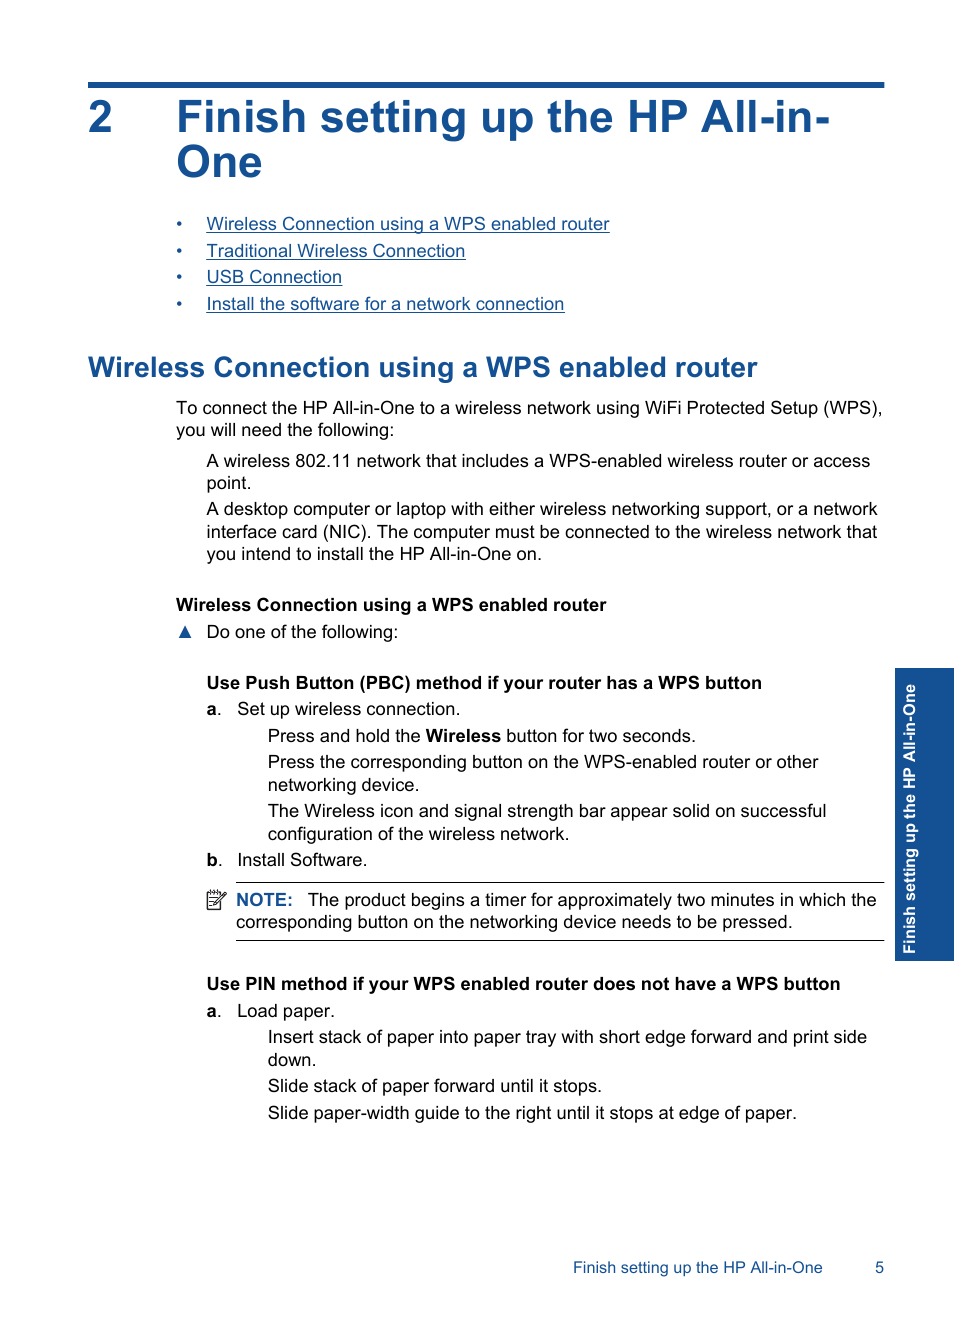 Finish setting up the hp all-in-one, Wireless connection